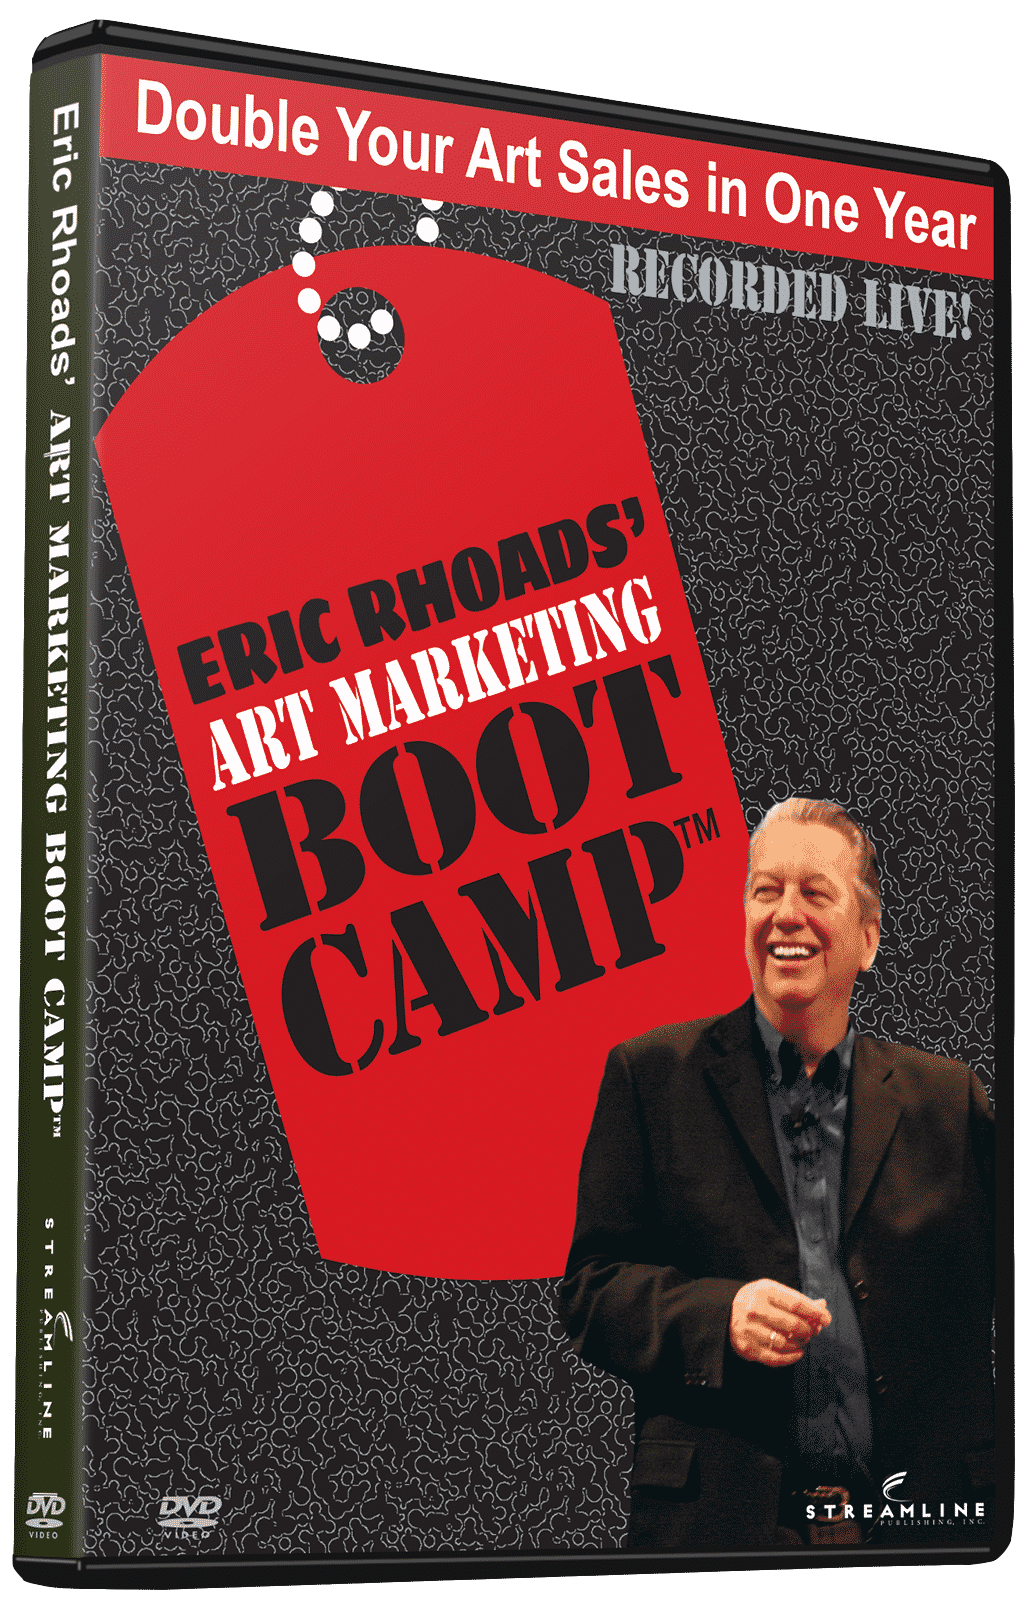 Eric Rhoads' Art Marketing Boot Camp